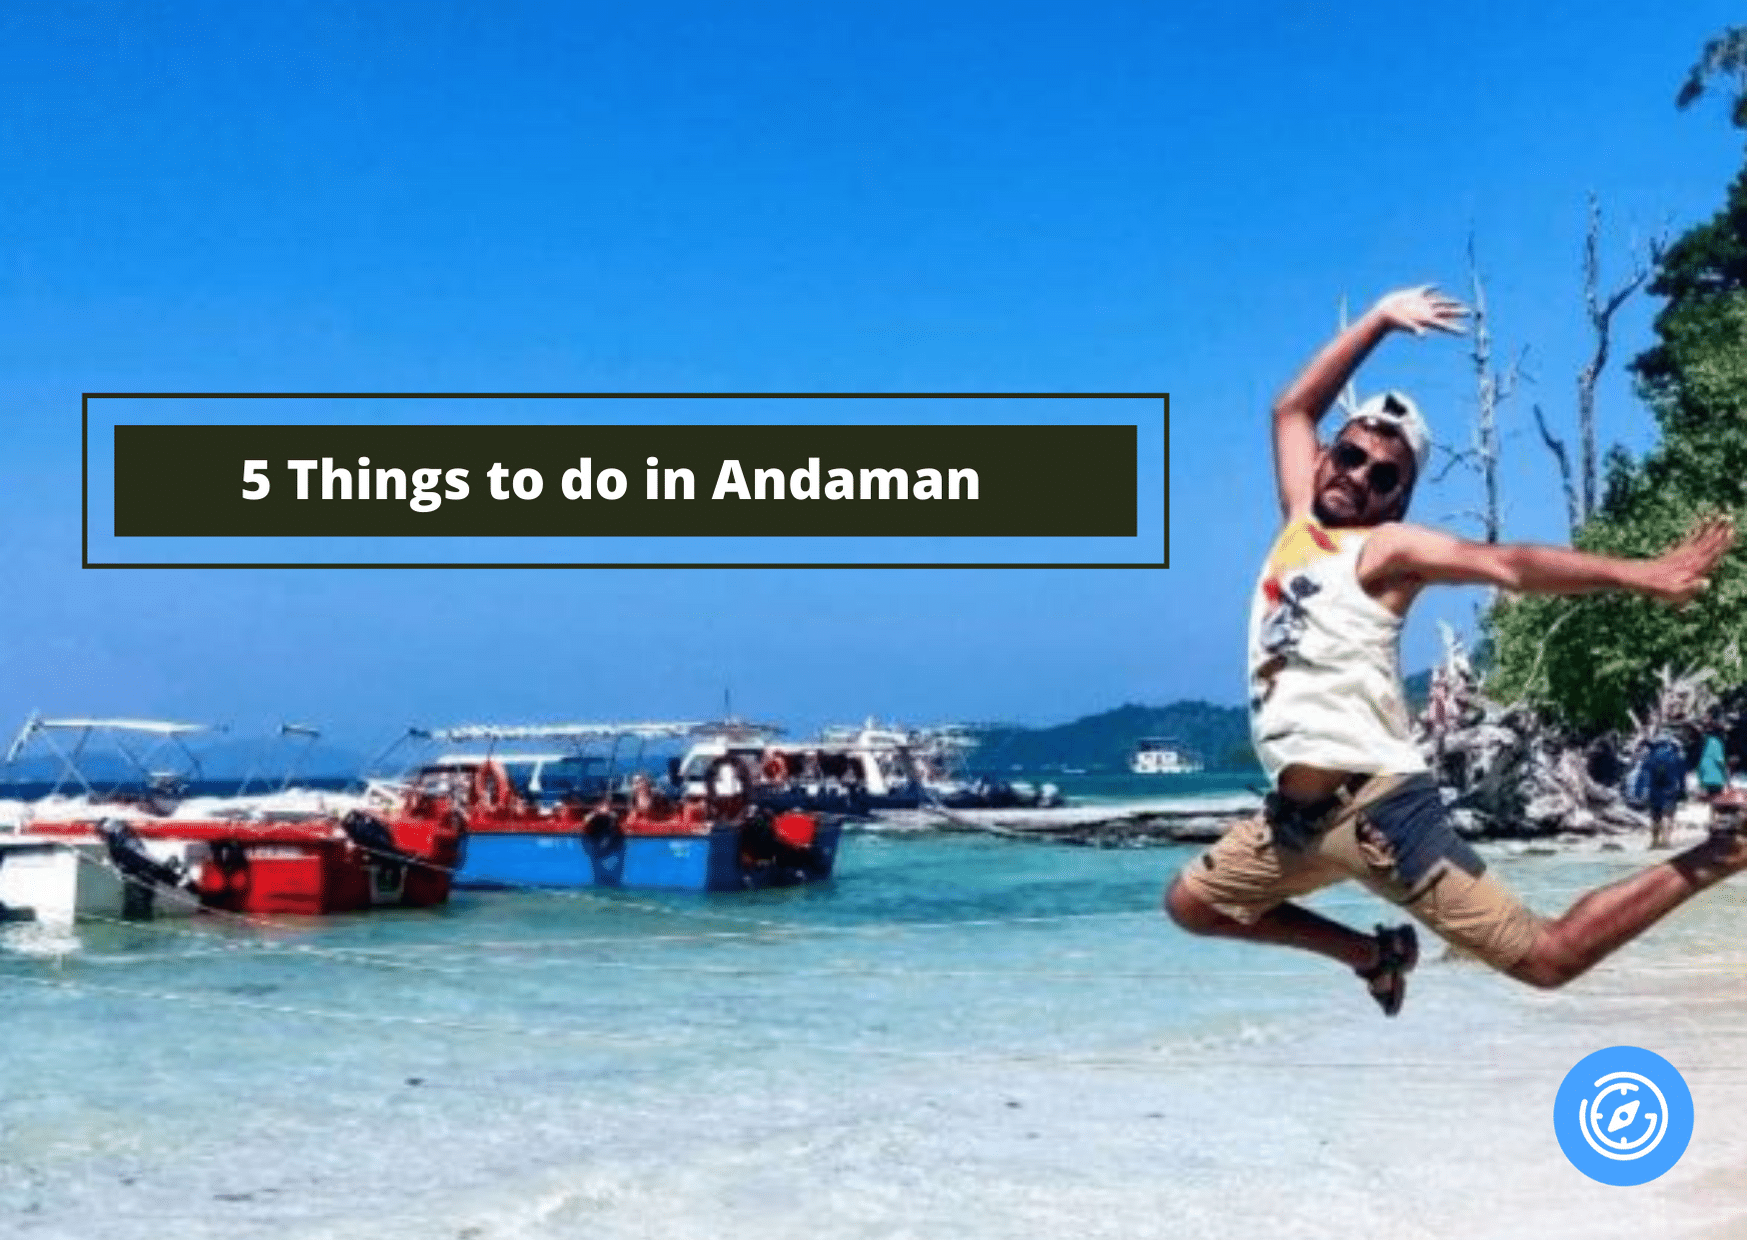 5 Best Things to Do in Andaman for a Perfect Vacation